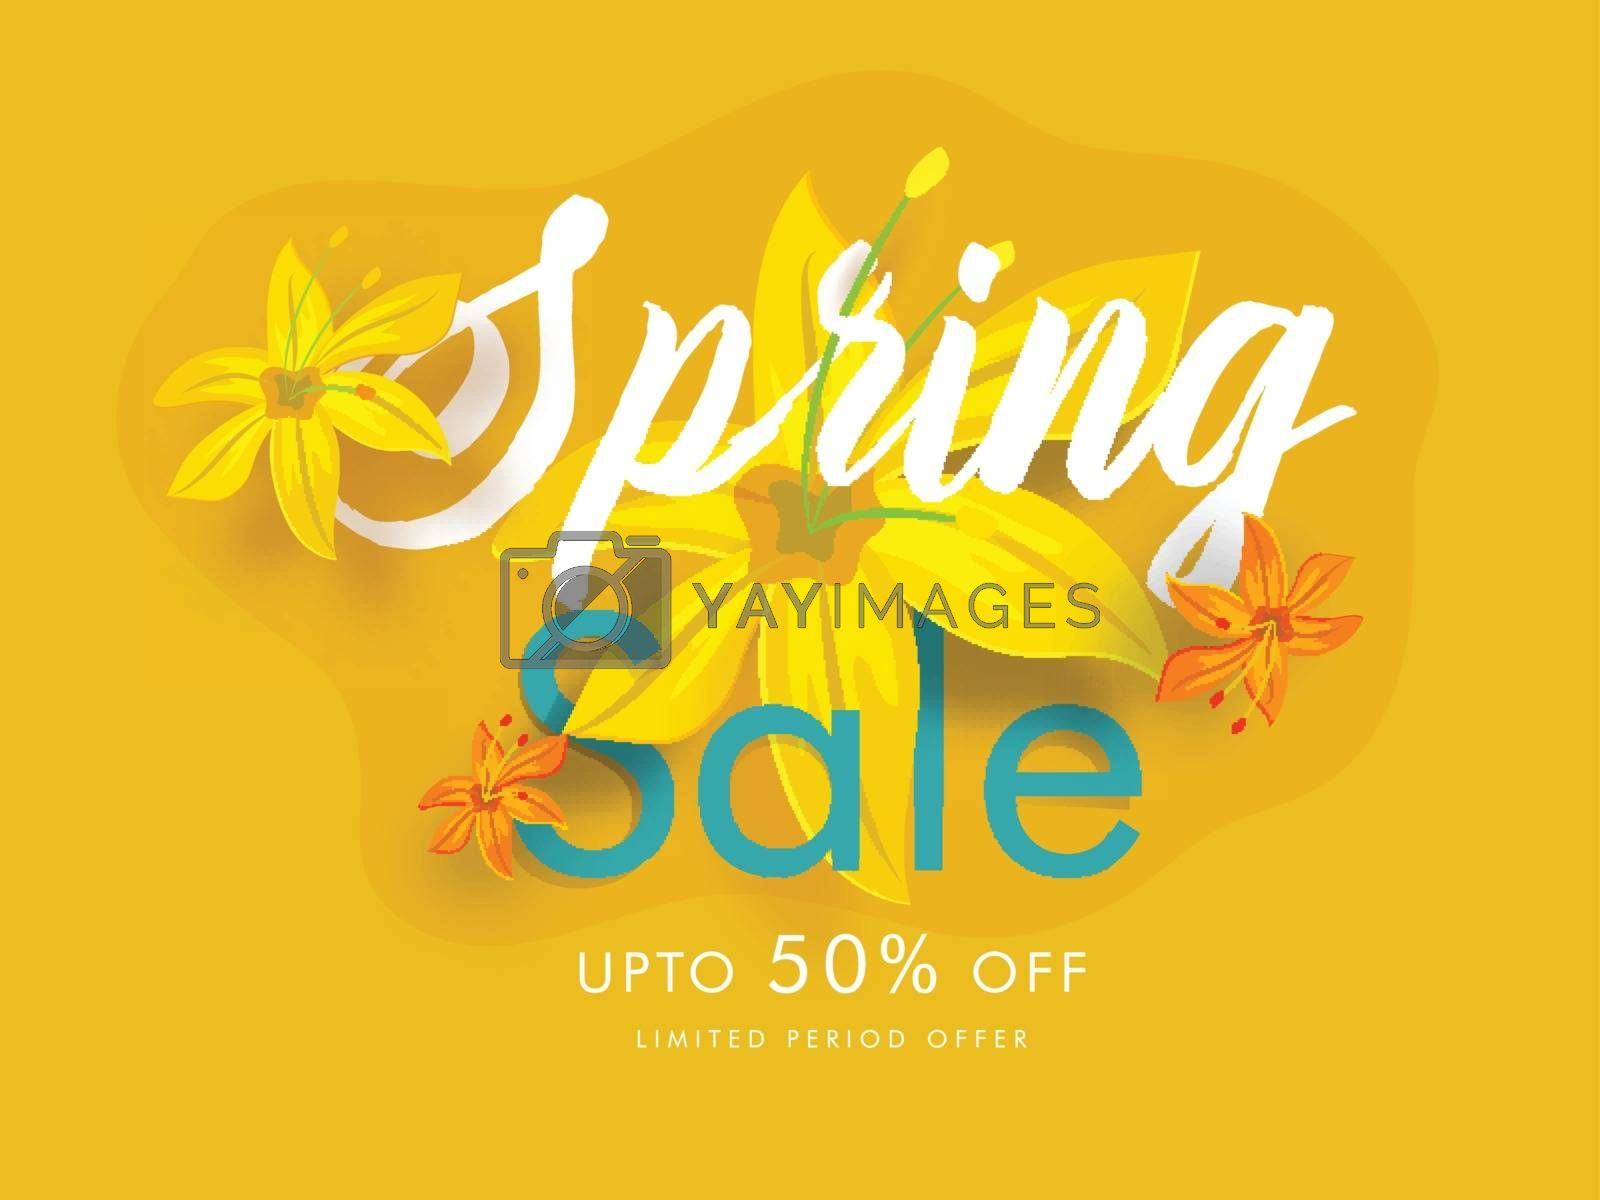 Royalty free image of Beautiful flowers decorated spring sale poster design with 50% d by aispl